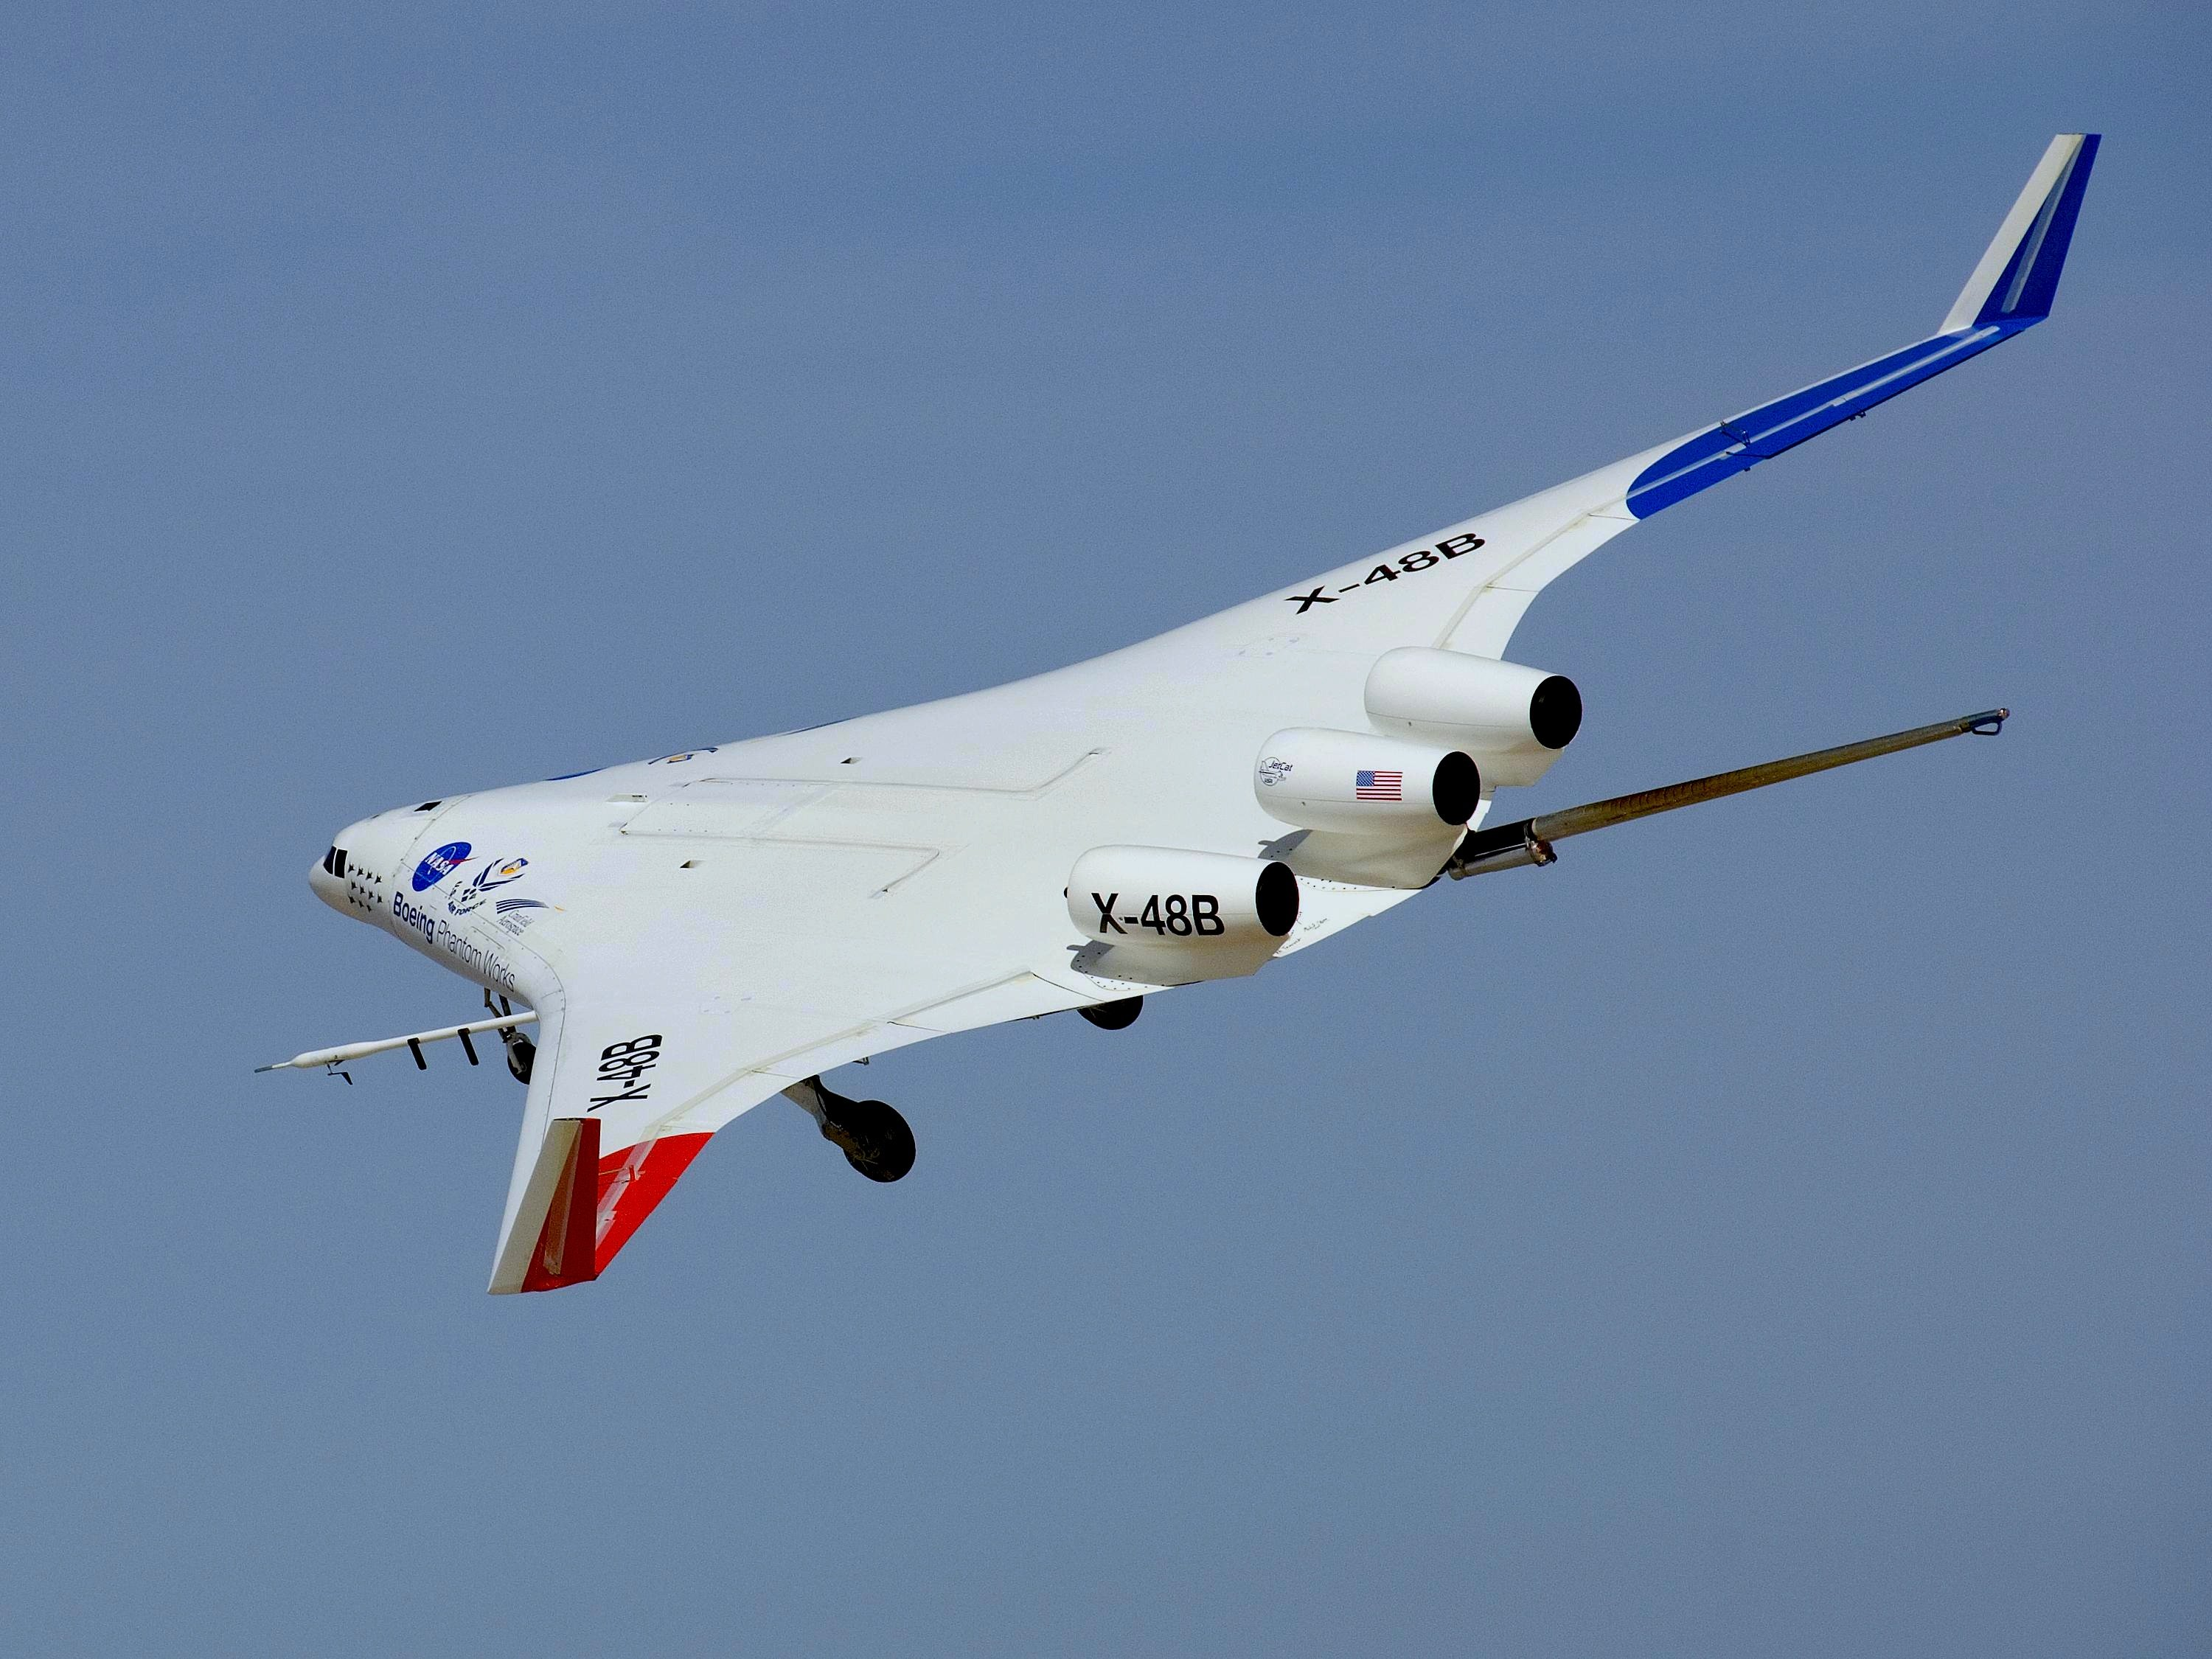 nasa x 48 drone aircraft - photo #9